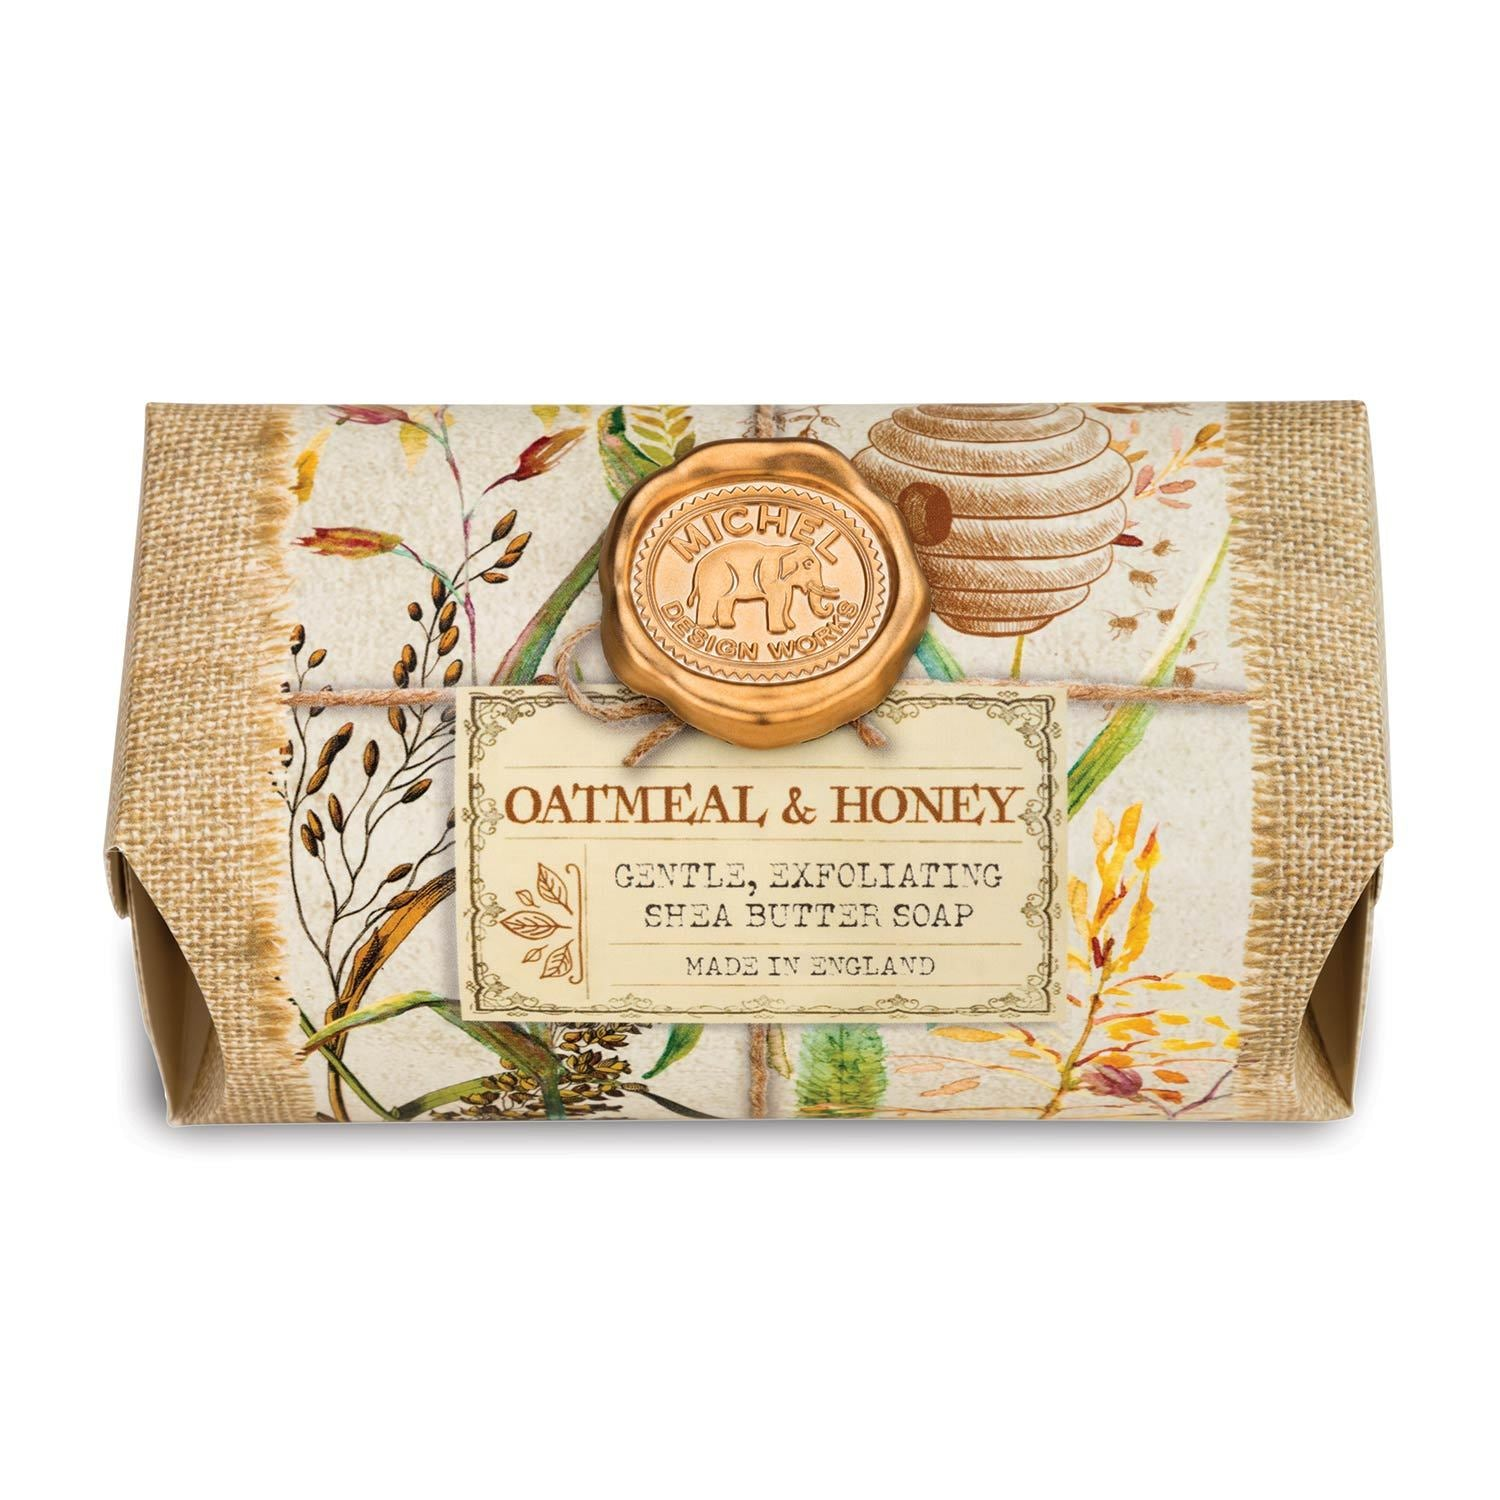 Oatmeal & Honey Large Bath Soap Bar